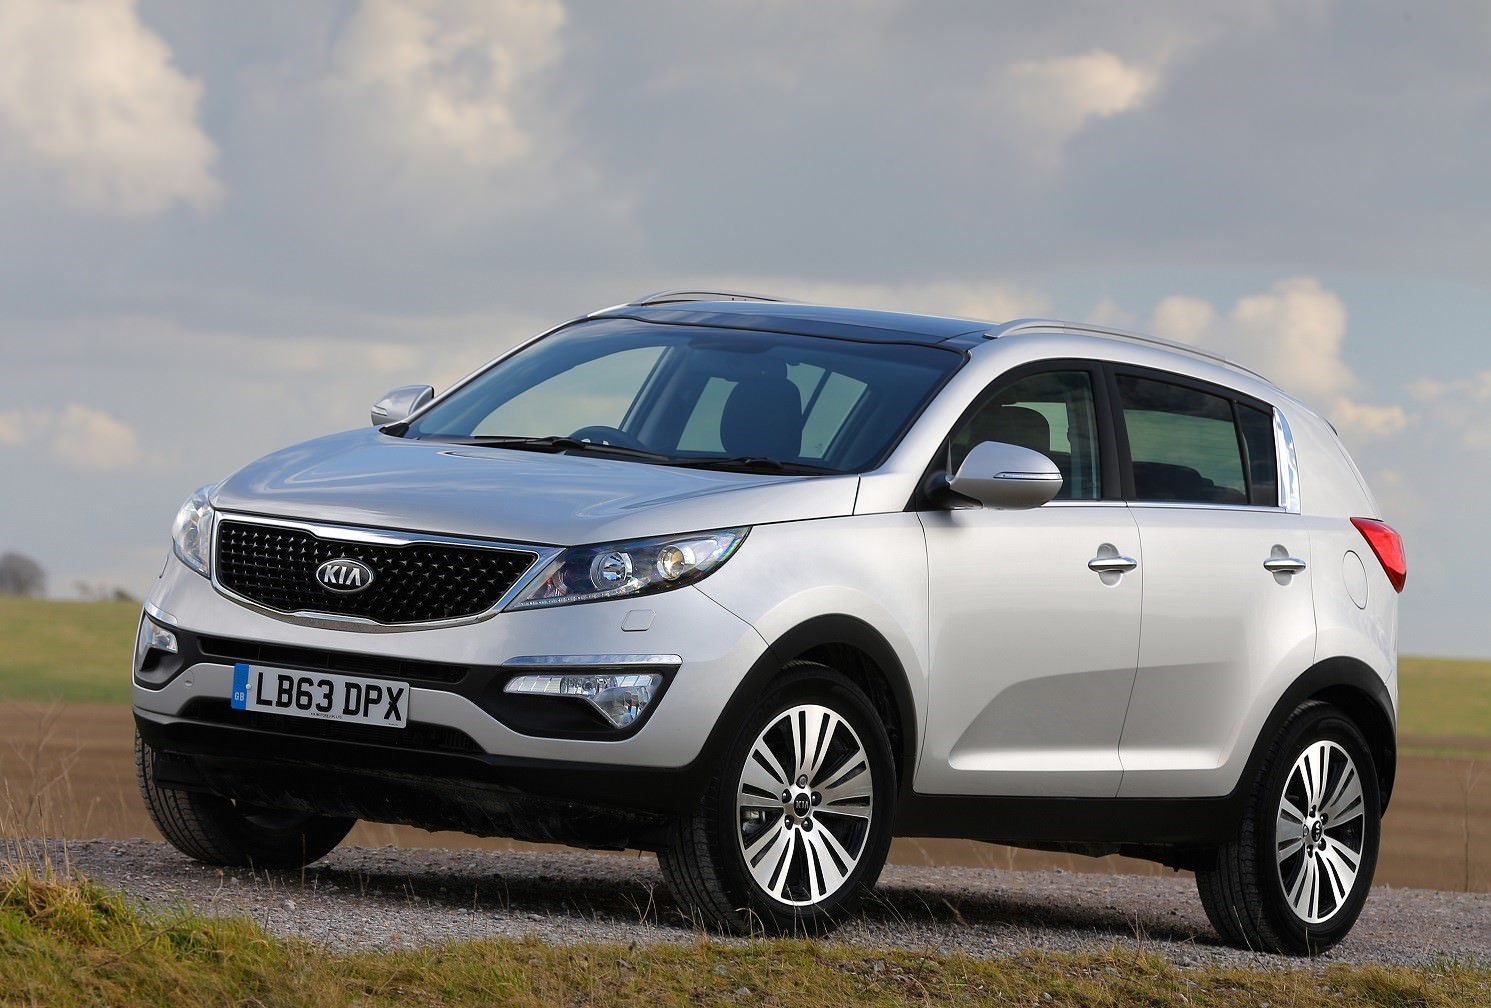 Used Car Buying Guide: Qashqai plus rivals Kia Sportage